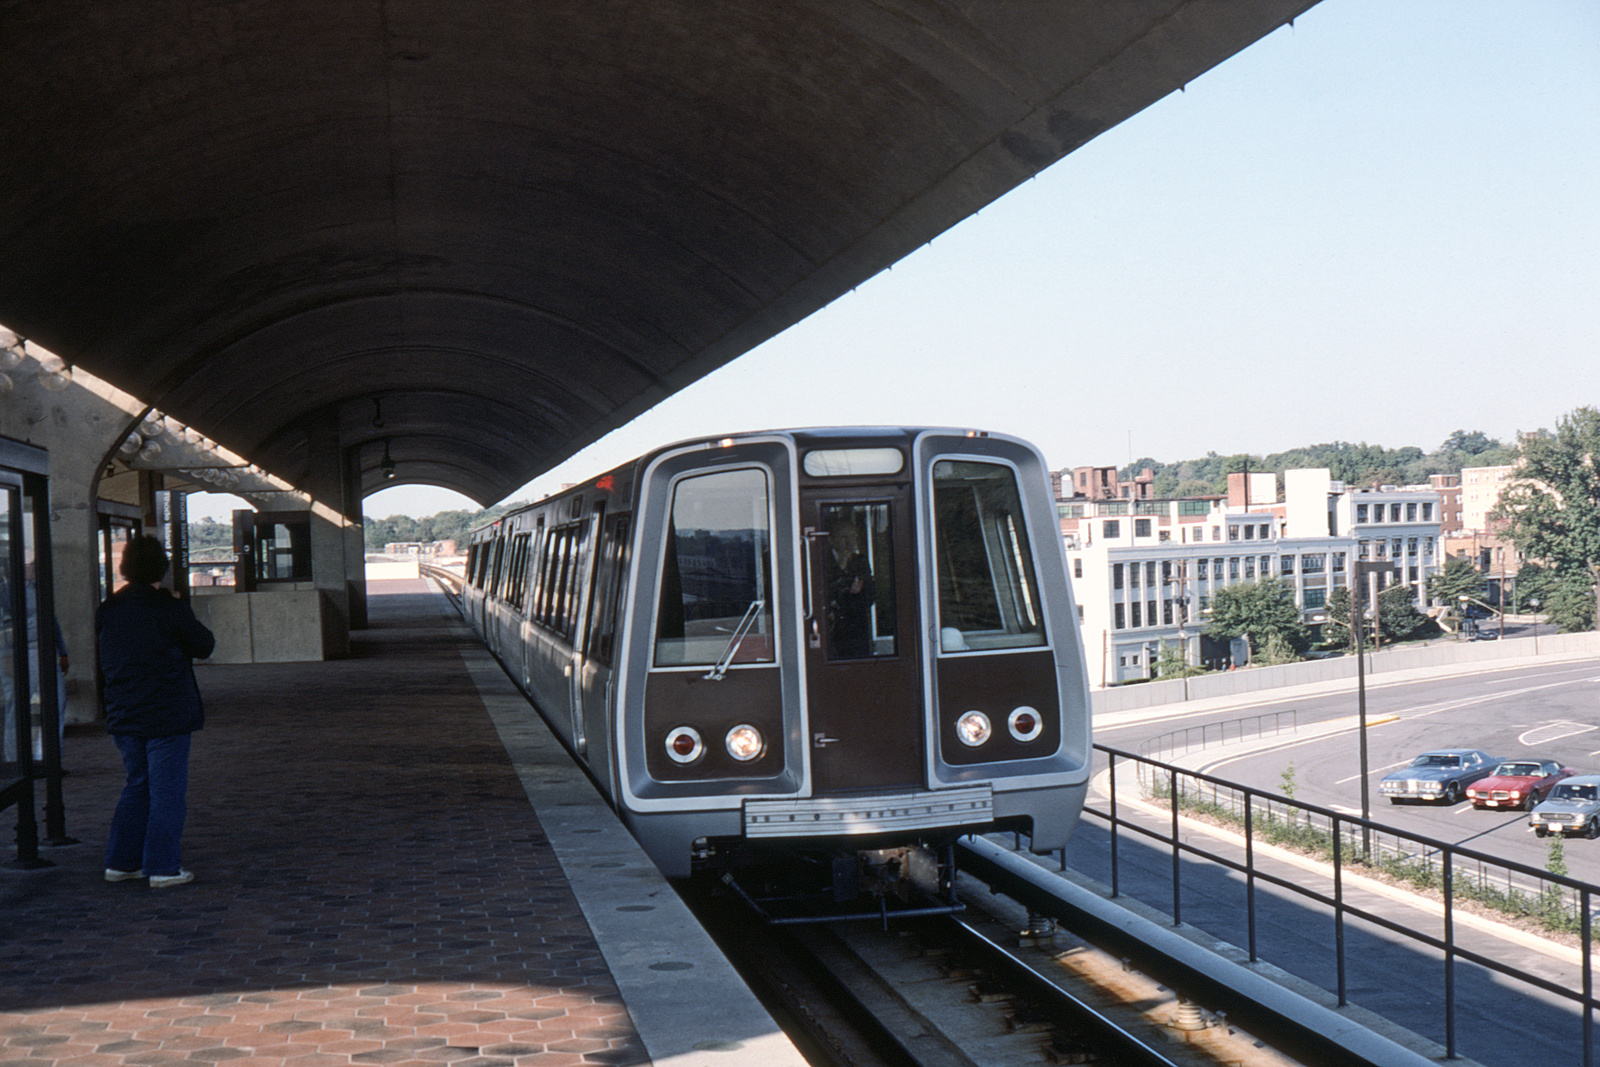 (356k, 1044x707)<br><b>Country:</b> United States<br><b>City:</b> Washington, D.C.<br><b>System:</b> Washington Metro (WMATA)<br><b>Line:</b> WMATA Red Line<br><b>Location:</b> Rhode Island Avenue <br><b>Collection of:</b> David Pirmann<br><b>Date:</b> 4/1976<br><b>Viewed (this week/total):</b> 3 / 4885